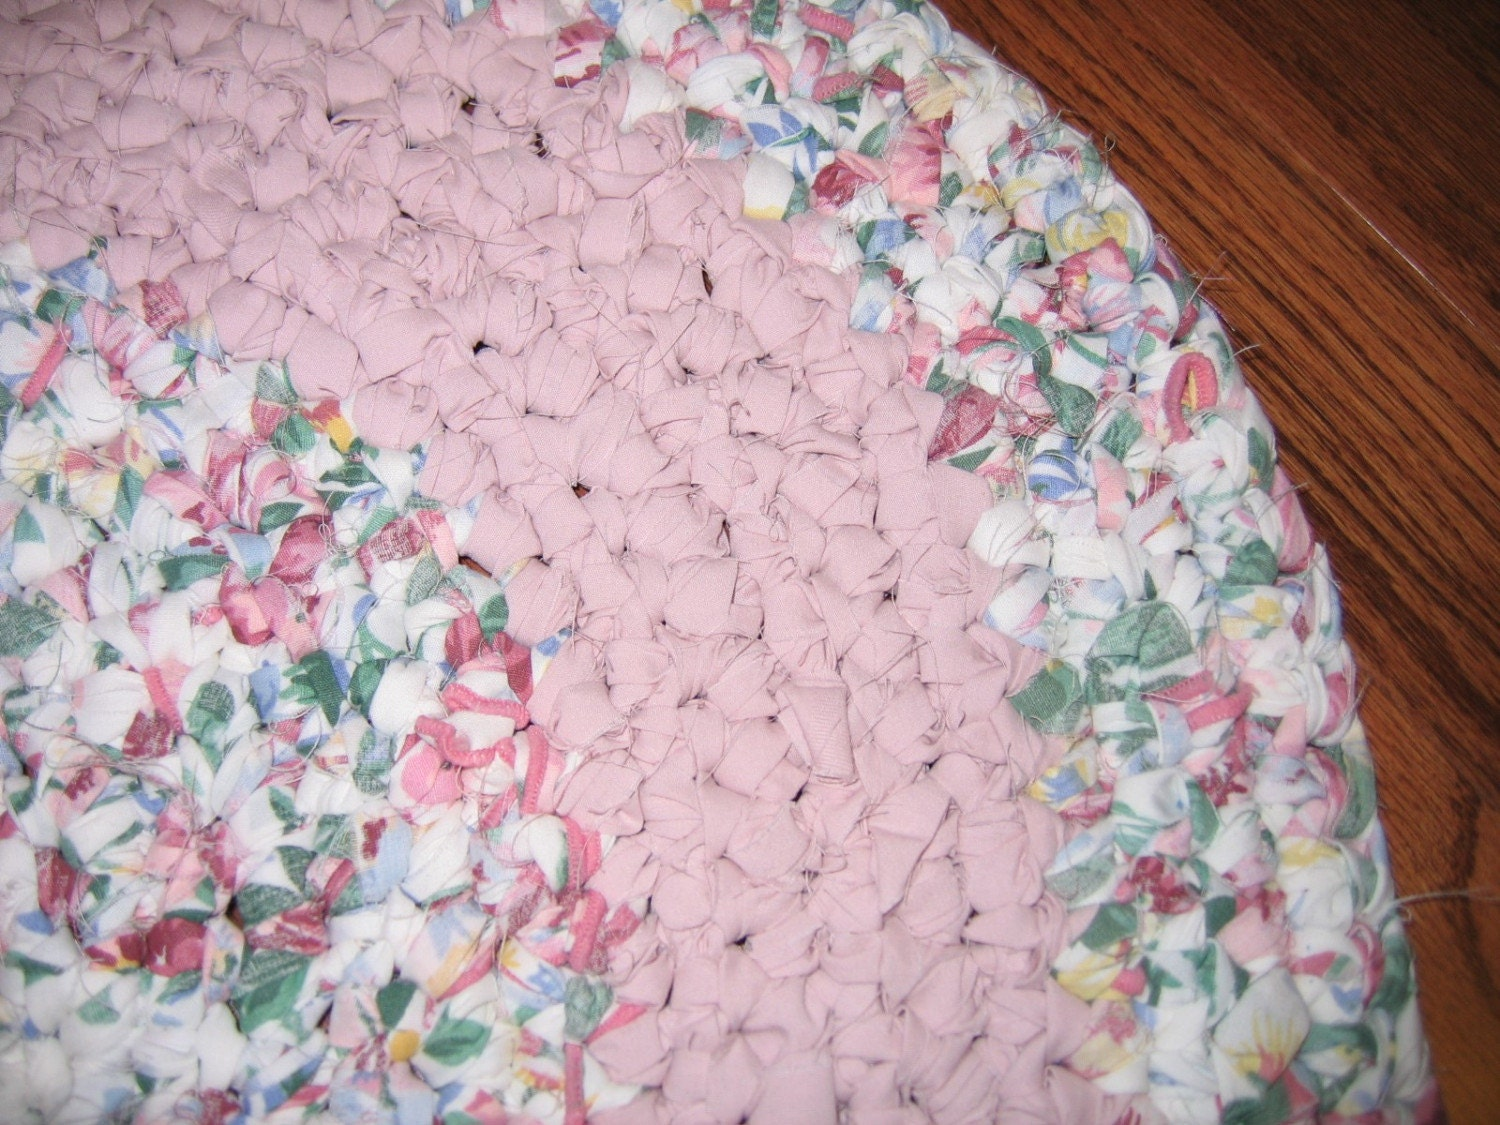 Free Crochet Pattern For Oval Rag Rug : Crocheted Oval Rag Rug by RaggedyAnns on Etsy